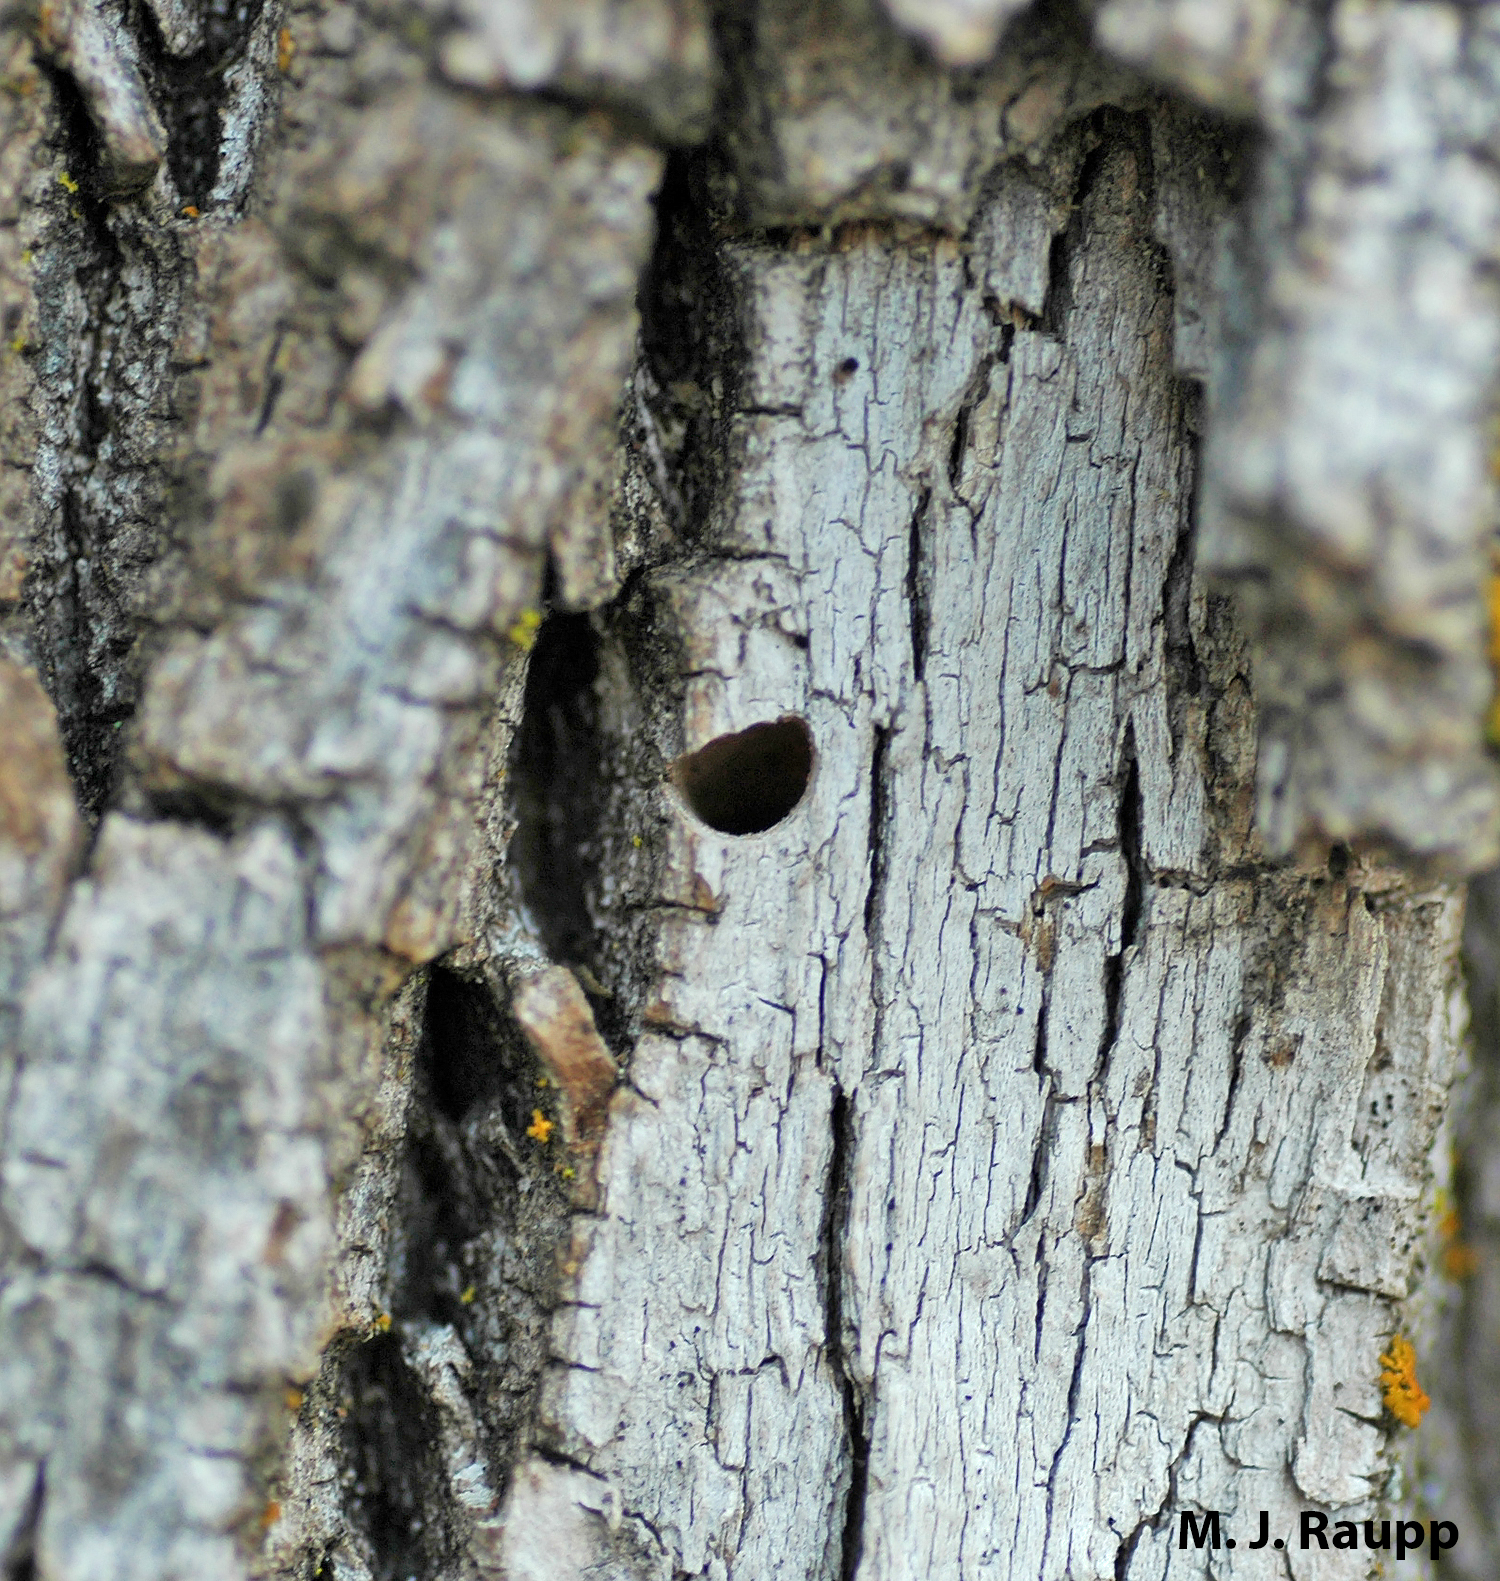 """The Emerald Ash Borer adult leaves behind a """"D"""" shaped exit hole in the bark of the tree. This is a good clue for diagnosing the presence of this pest."""